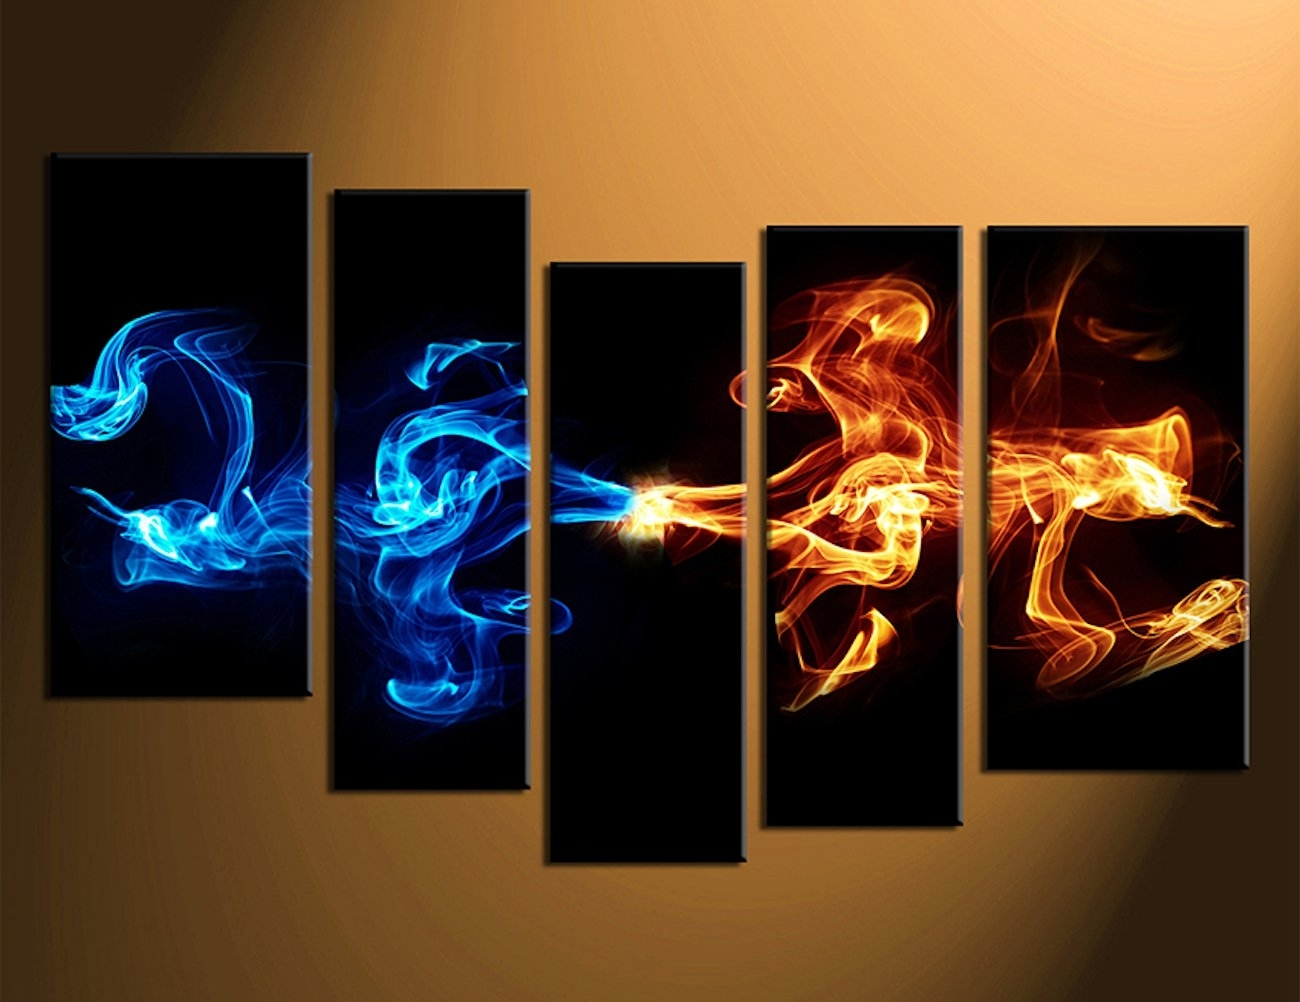 Abstract 5-Piece Smoke Canvas Wall Art » Gadget Flow within 5 Piece Canvas Wall Art (Image 6 of 20)